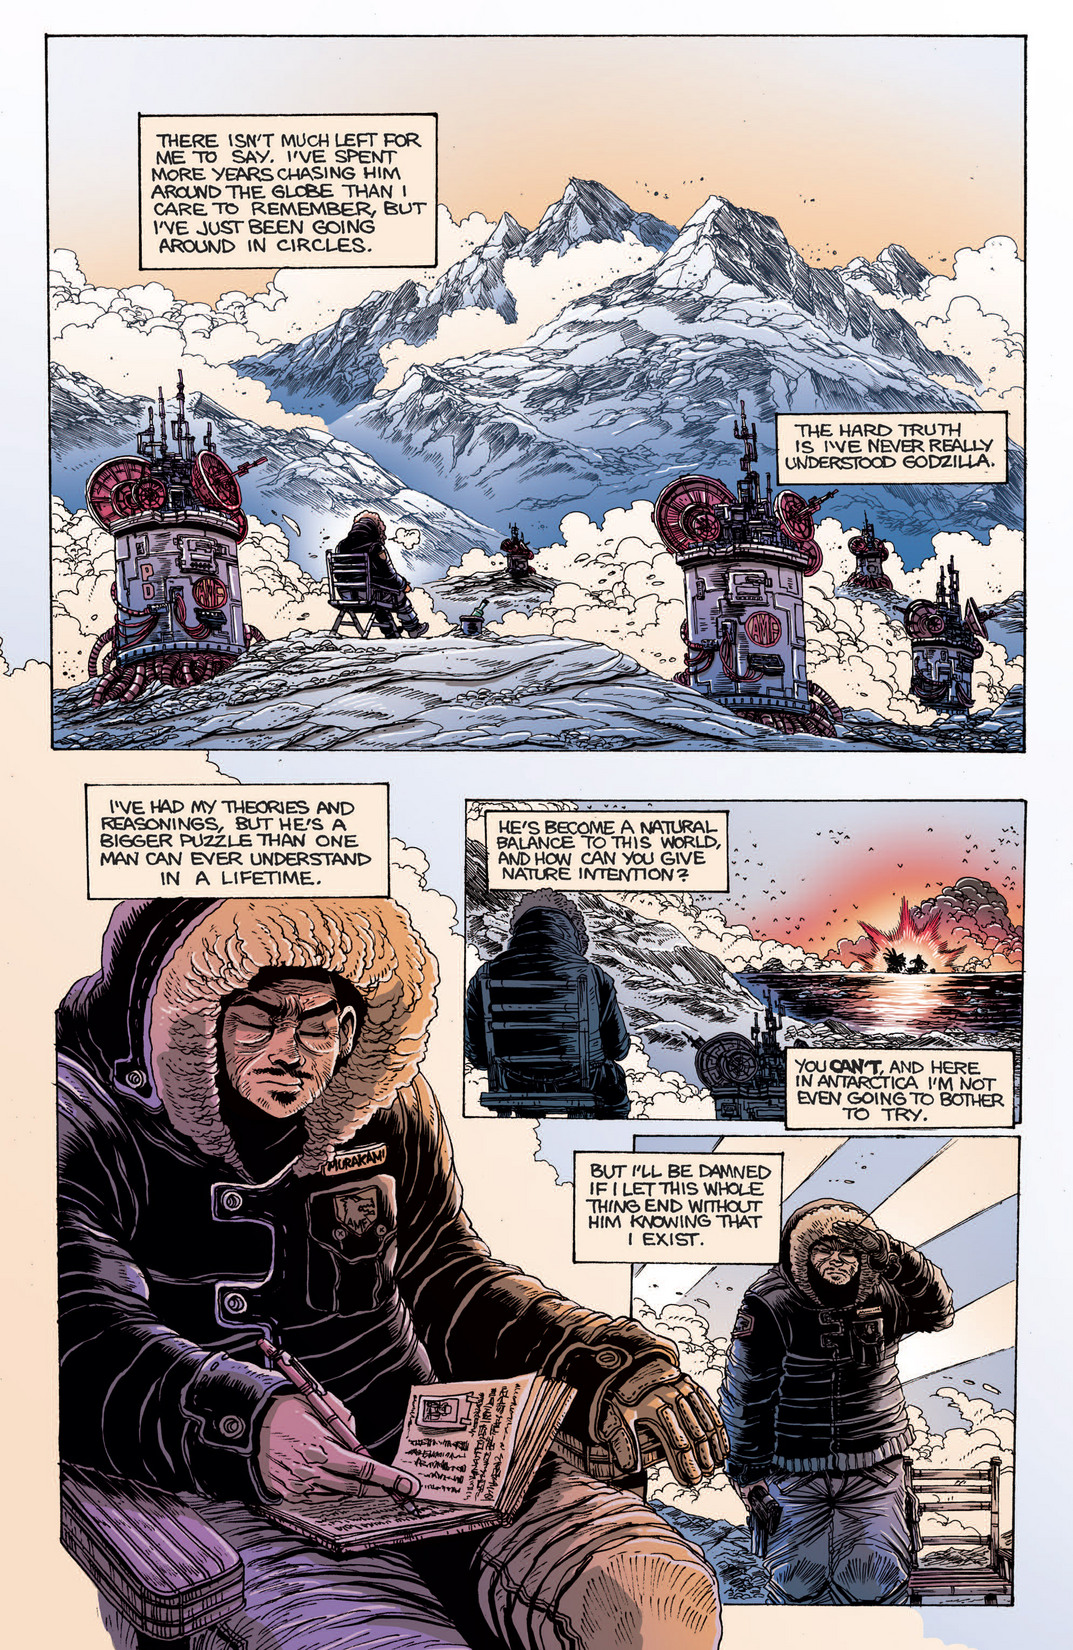 HALF-CENTURY WAR Issue 5 - Page 1.jpg